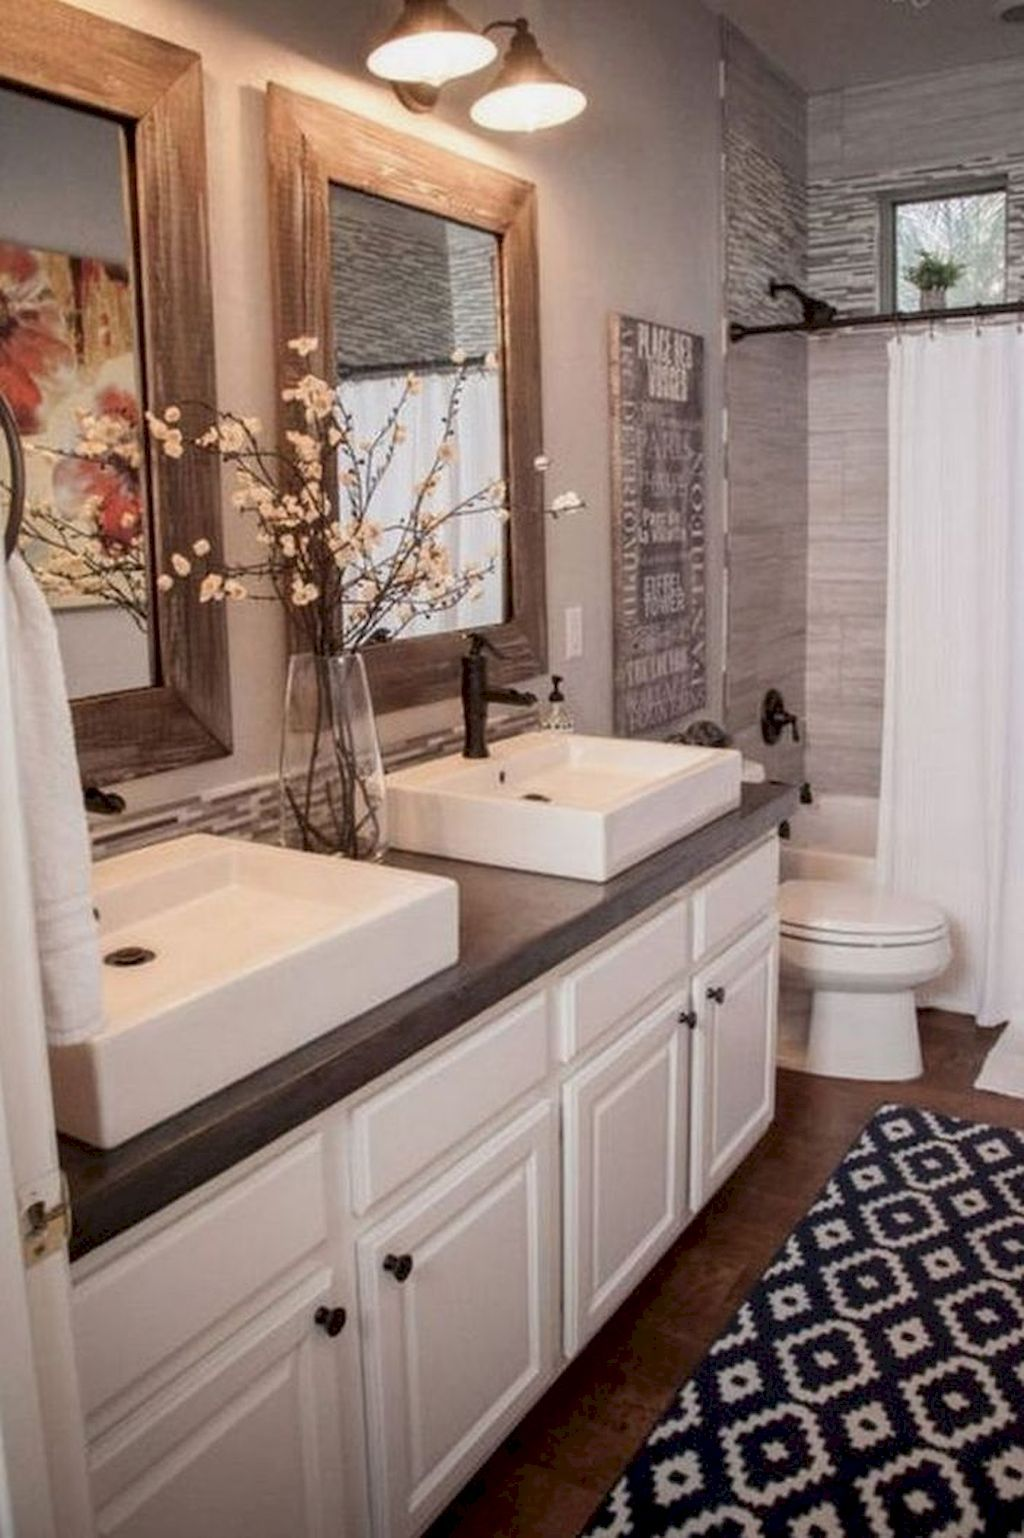 Awesome 100 Small Master Bathroom Remodel Ideas Https Decorapatio Com 2018 02 22 100 Bathroom Remodel Master Small Bathroom Remodel Farmhouse Bathroom Decor